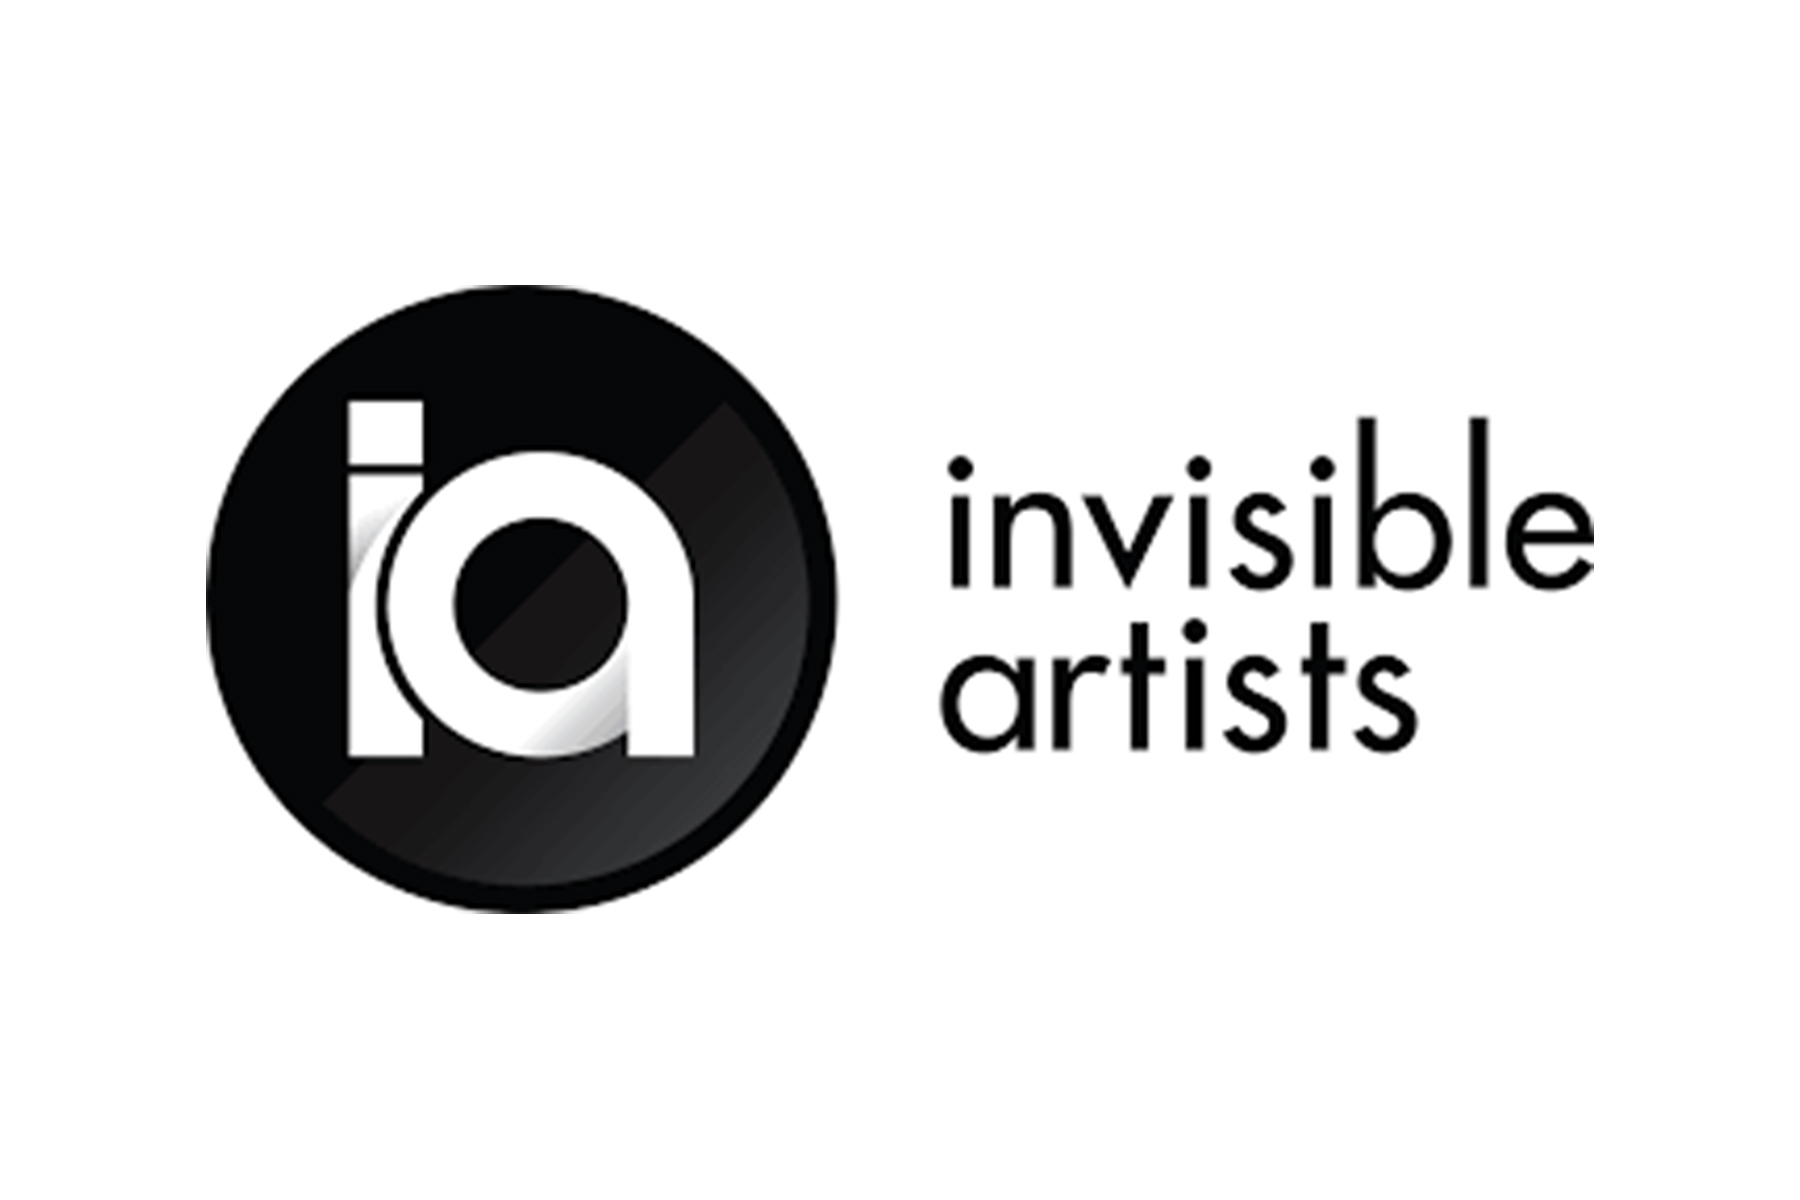 invisible-artists.jpg